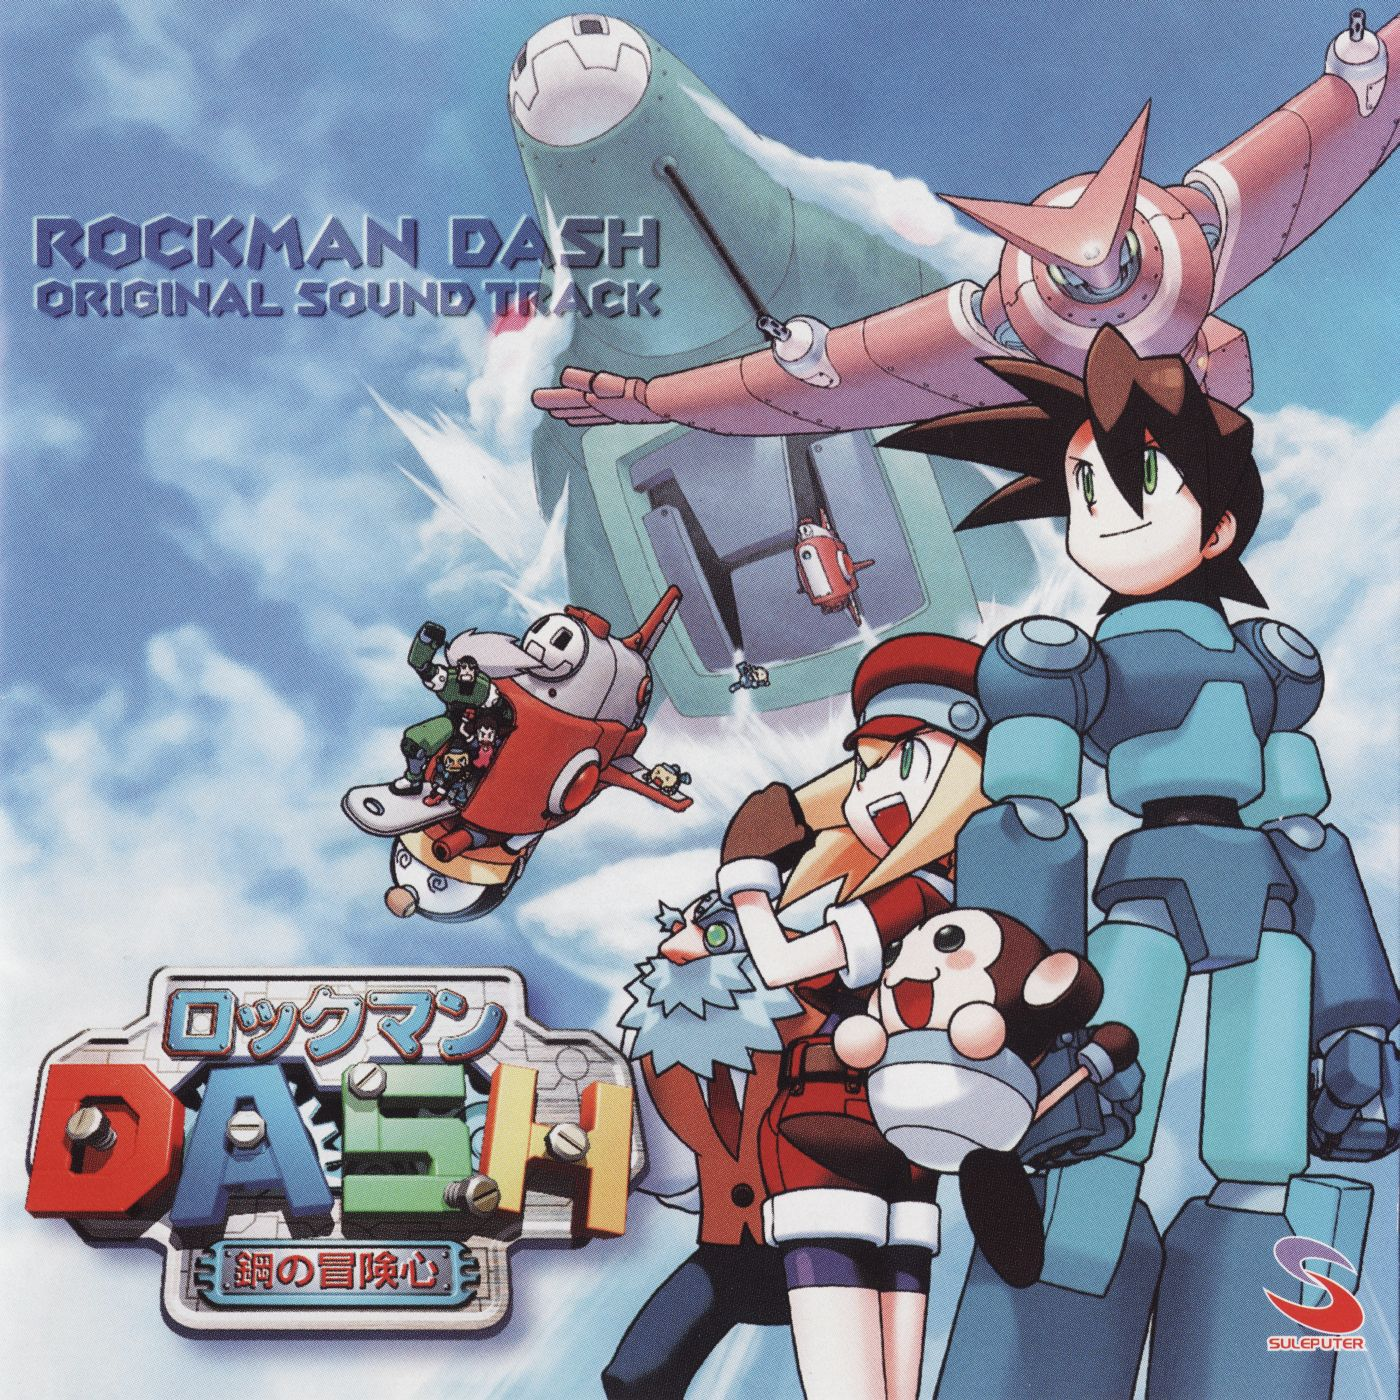 Rockman Dash Original Sound Track